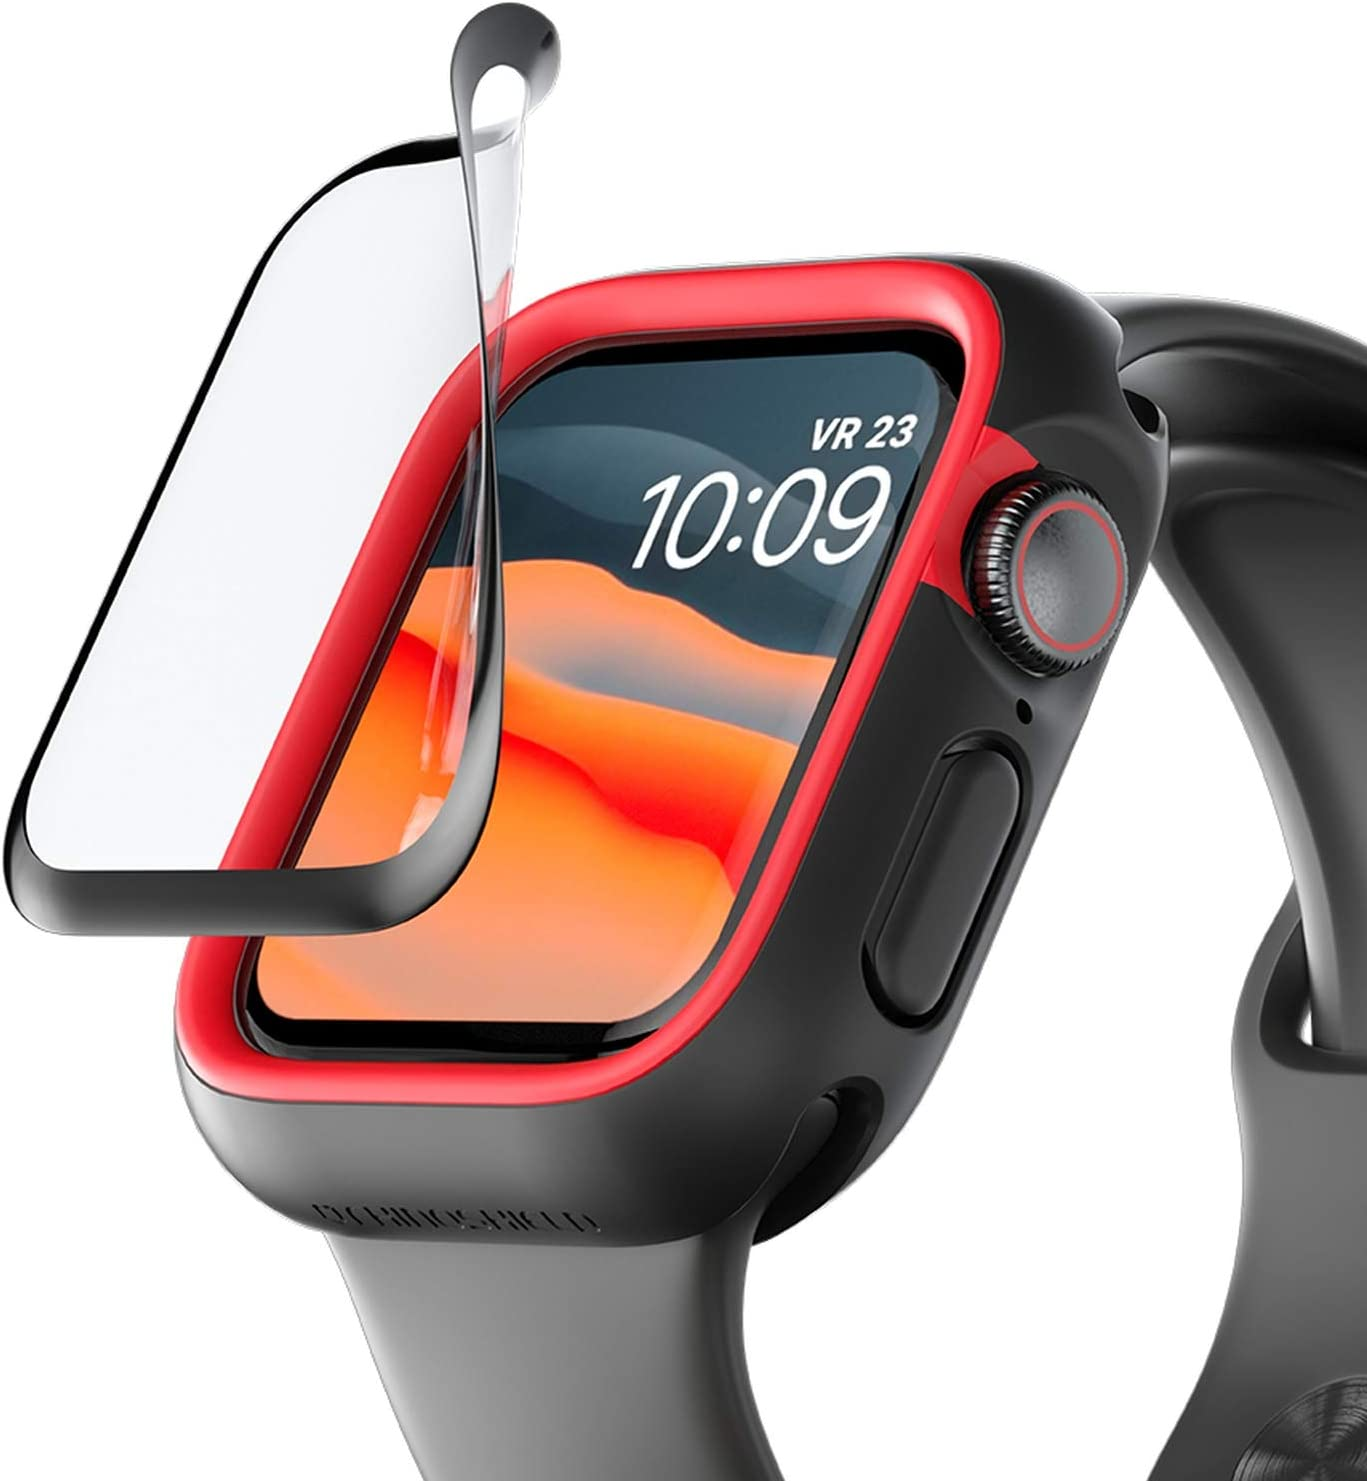 RhinoShield 3D Impact Screen Protector Compatible with Apple Watch SE [44mm] & Series 6/5 / 4 [44mm] | 3X Better Impact Protection - 3D Curved Edges for Full Coverage - Durable and Scratch Resistant